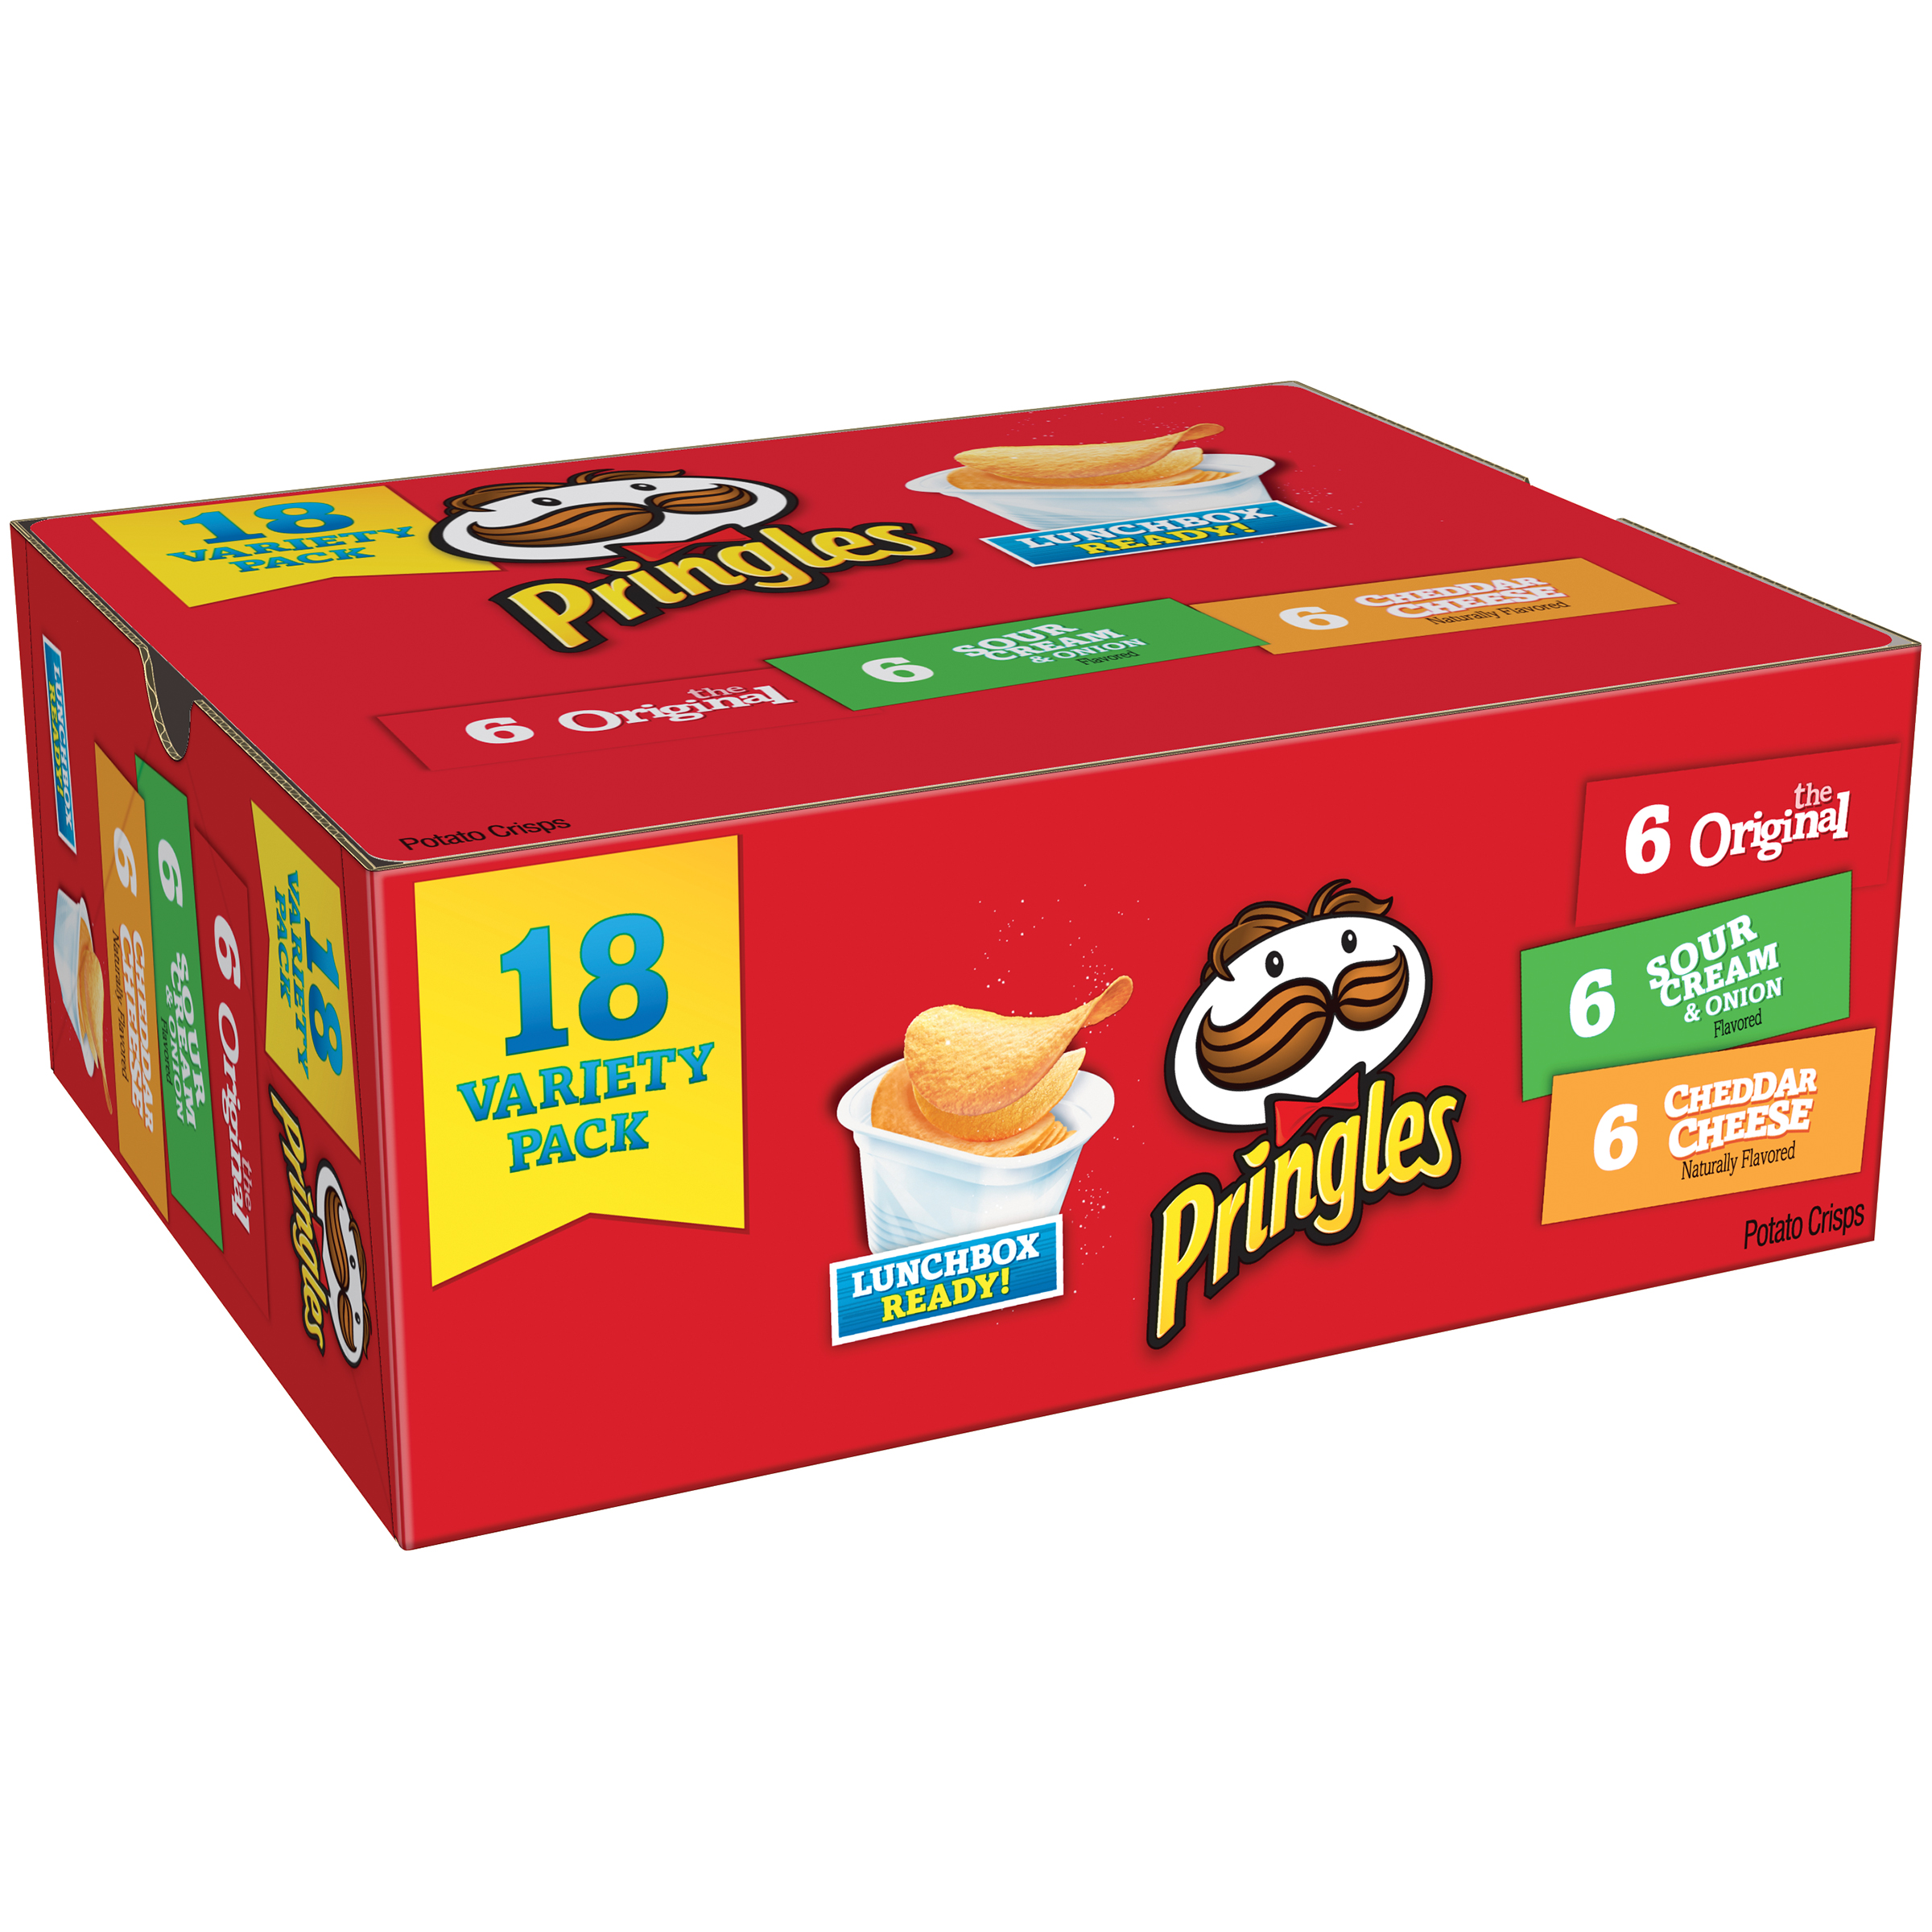 Pringles Original, Sour Cream & Onion and Cheddar Cheese Potato Crisps Chips Variety Pack 18 ct Box